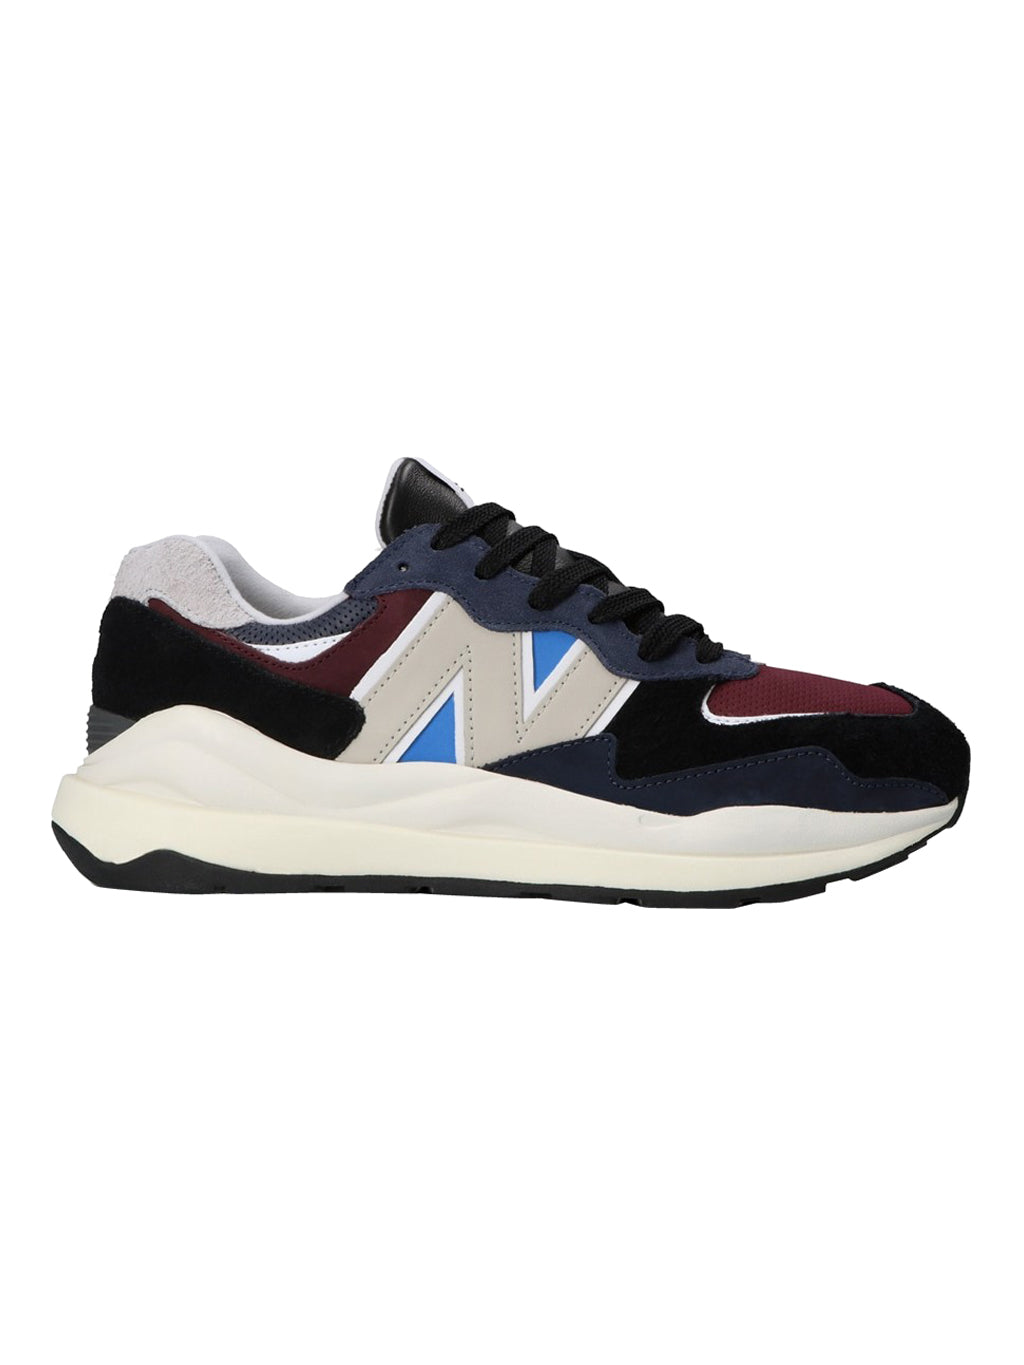 Navy and Burgundy 57/40 Shoes